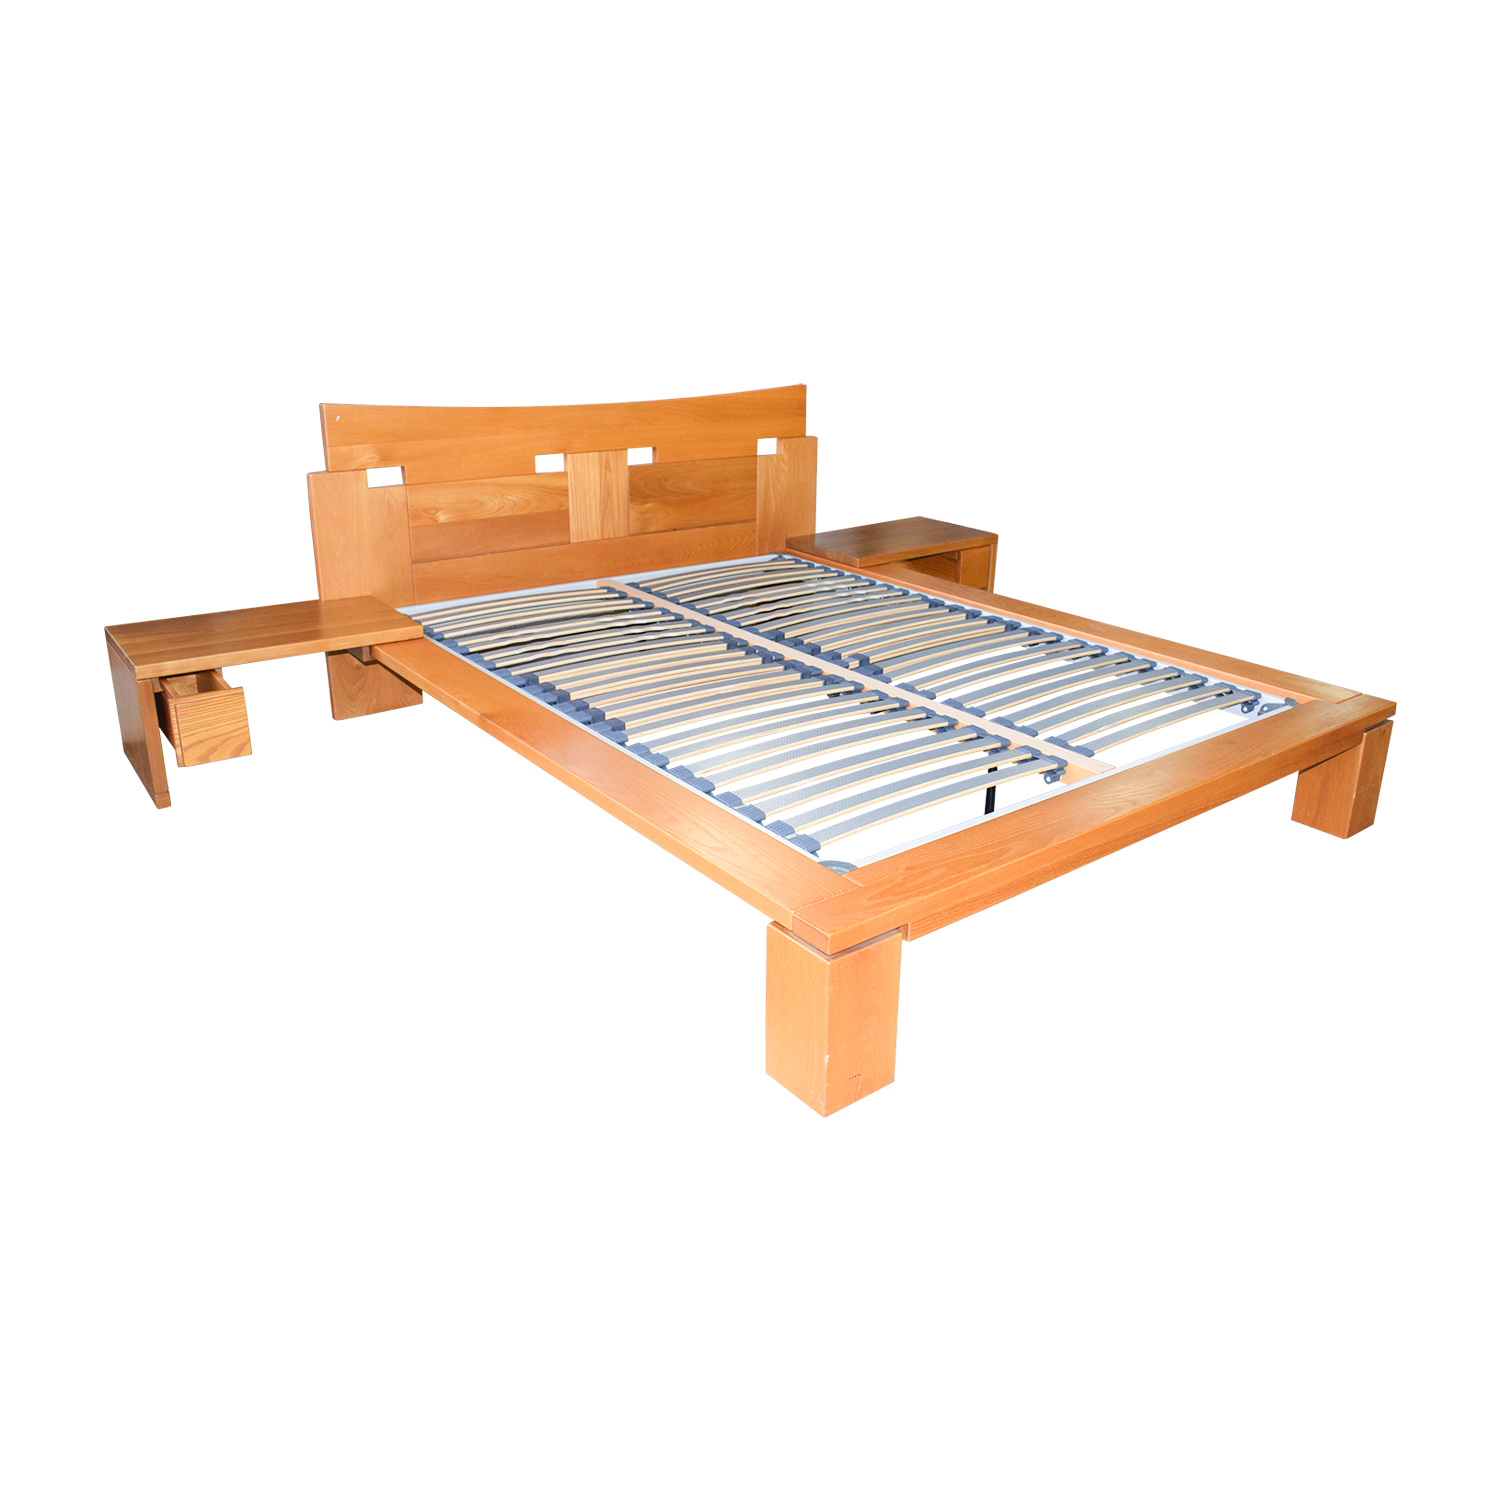 Roche Bobois Roche Bobois Wood Platform Full Bed Frame with End Tables on sale